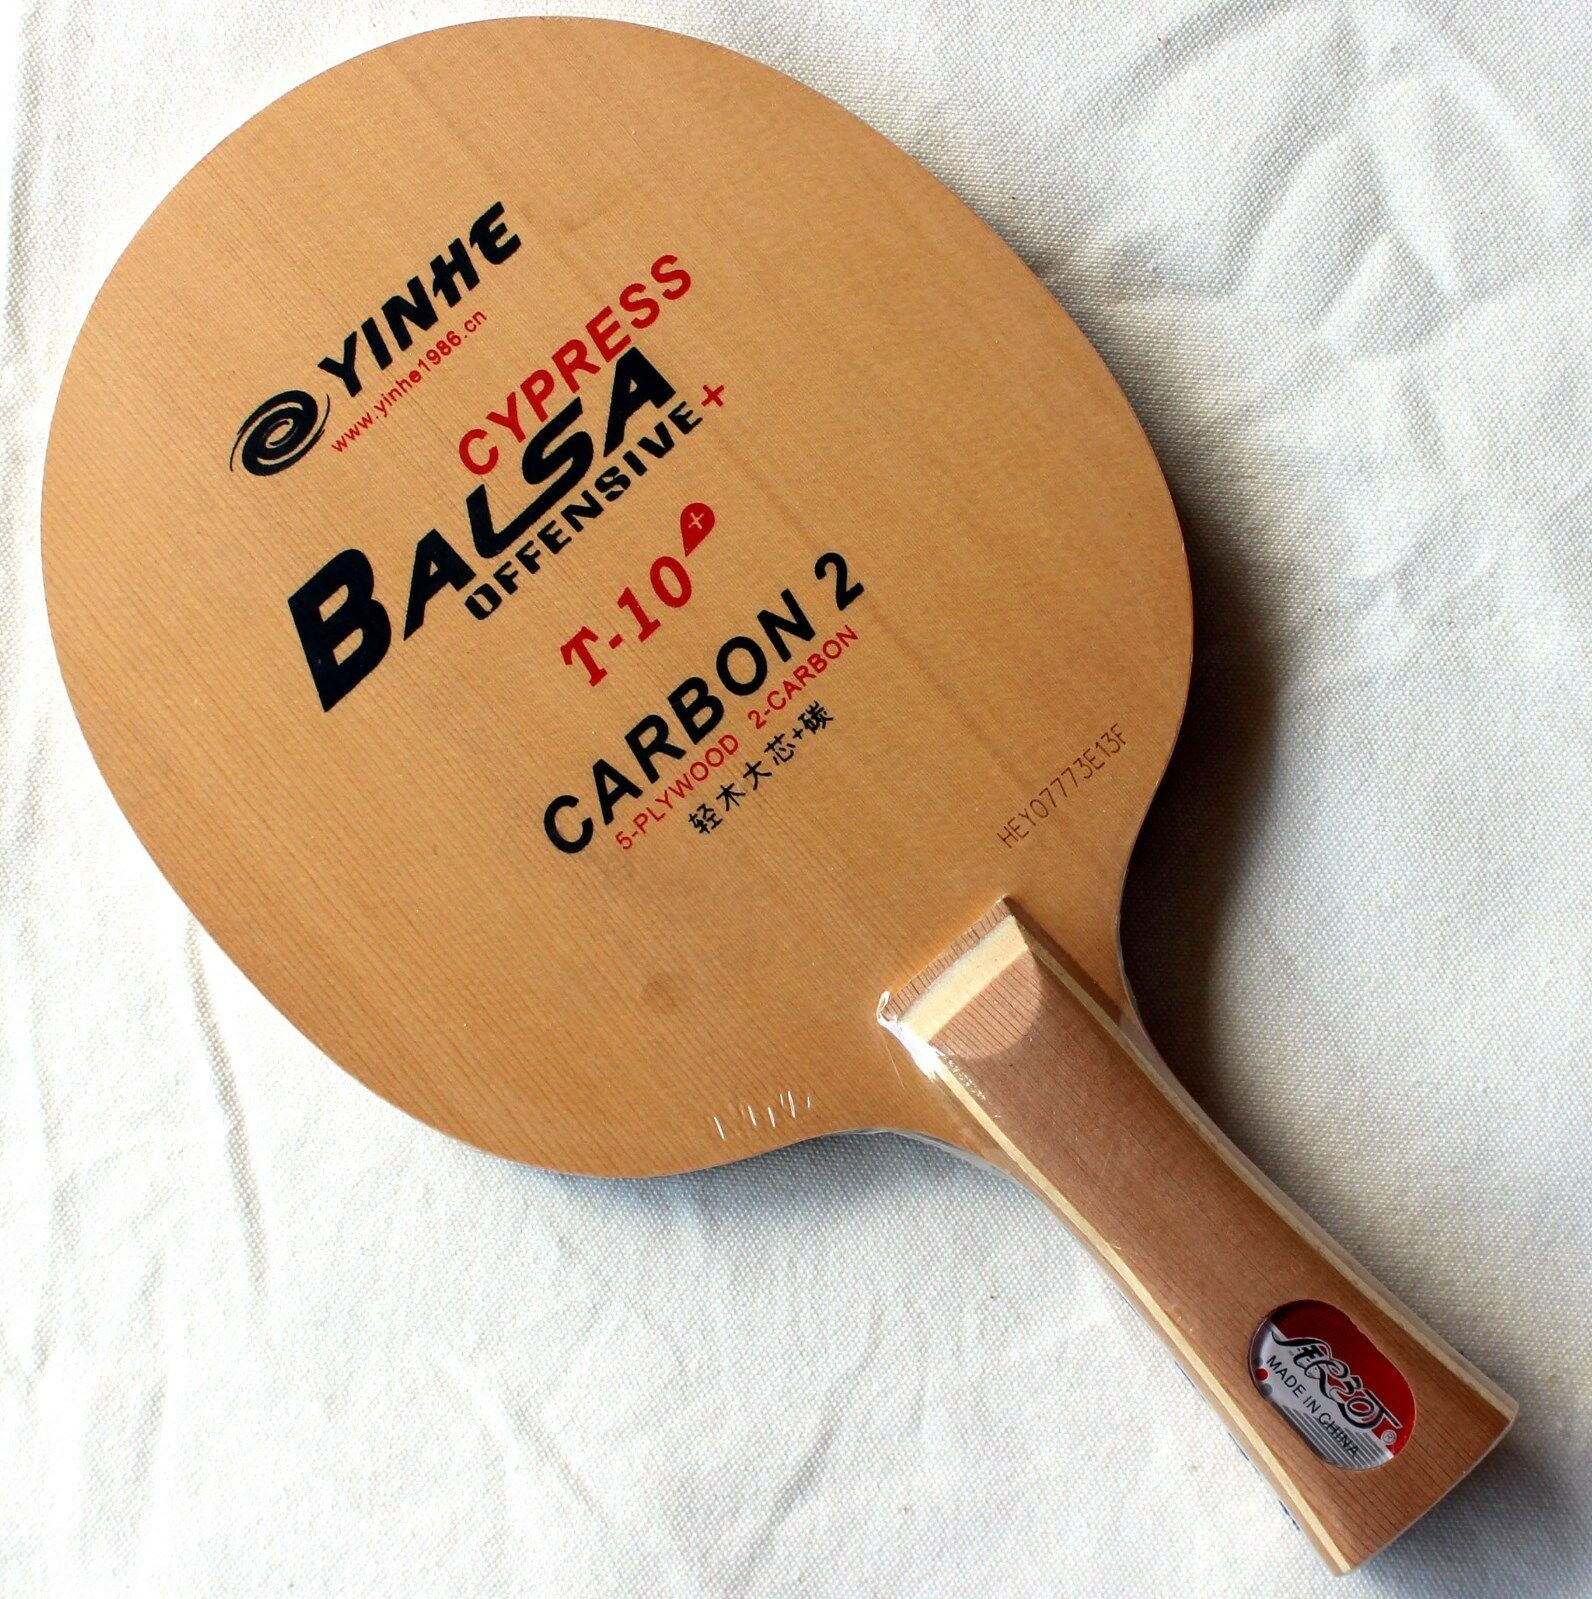 7x Galaxy YinHe T-10+ Table Tennis Blades, Balsa Cypress Carbon2, OFF+, UK